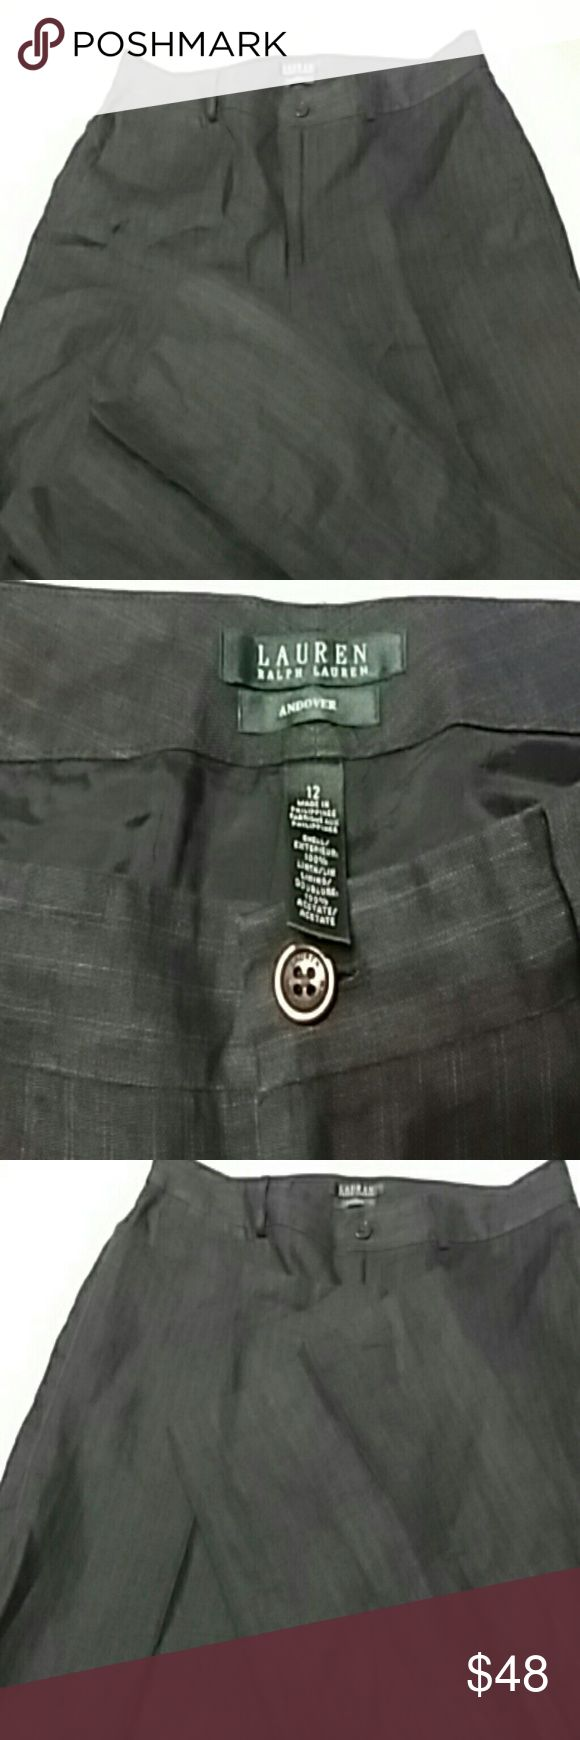 Ralph Lauren linen pants Navy blue Ralph Lauren Andover pants. These pants are navy blue with a goldish brown stripe in it. The pictures cannot do these pants Justice. They are beautiful and are going to be very sharp with a navy blue linen, brown, or white linen shirt. Ralph Lauren Pants Trousers